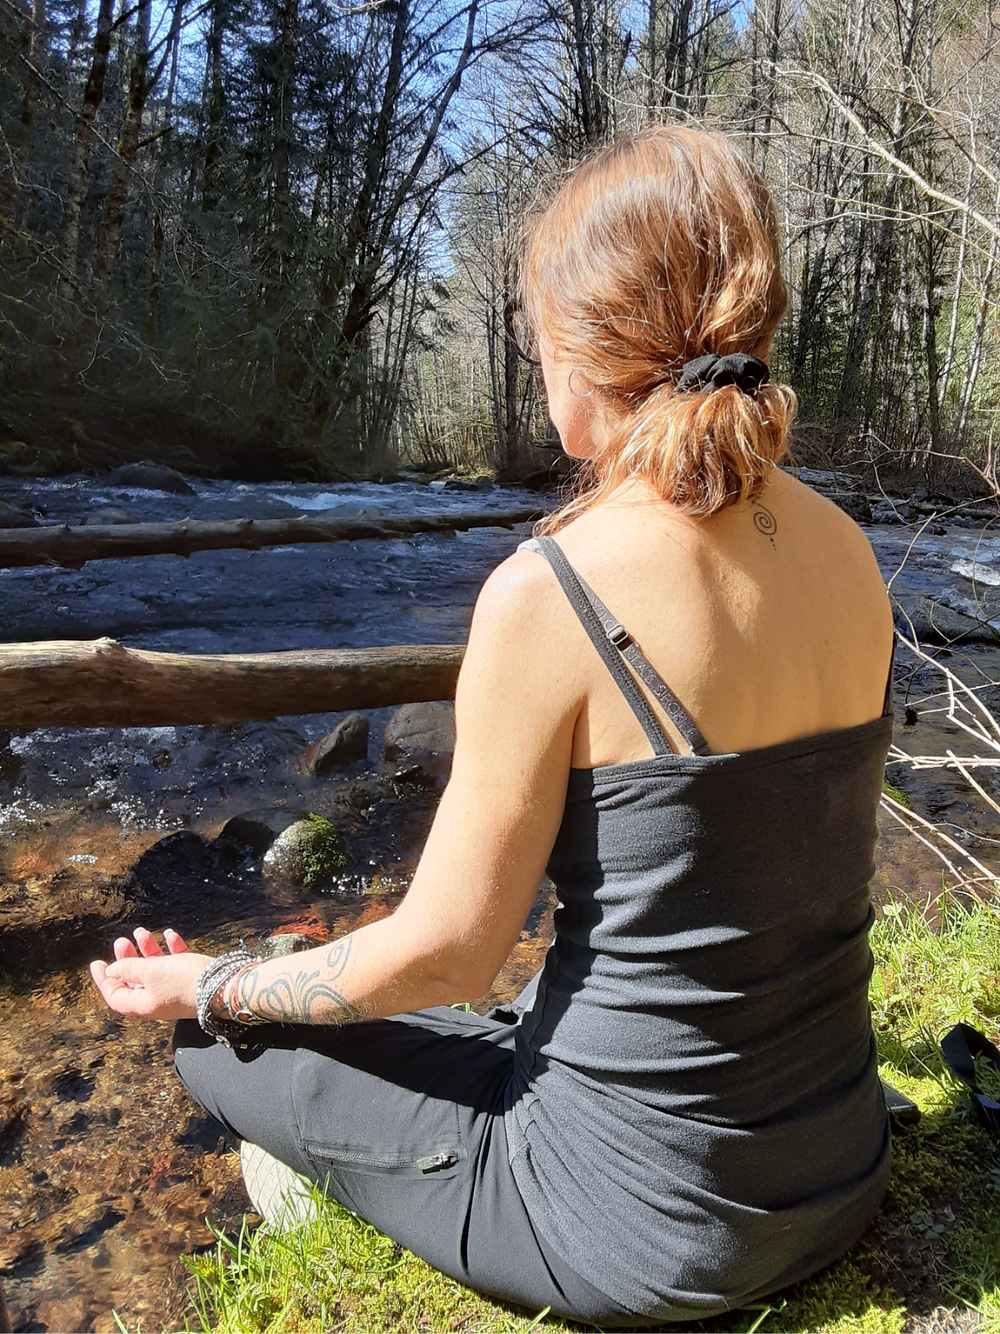 Spiritual practice in the Mt. Hood National Forest